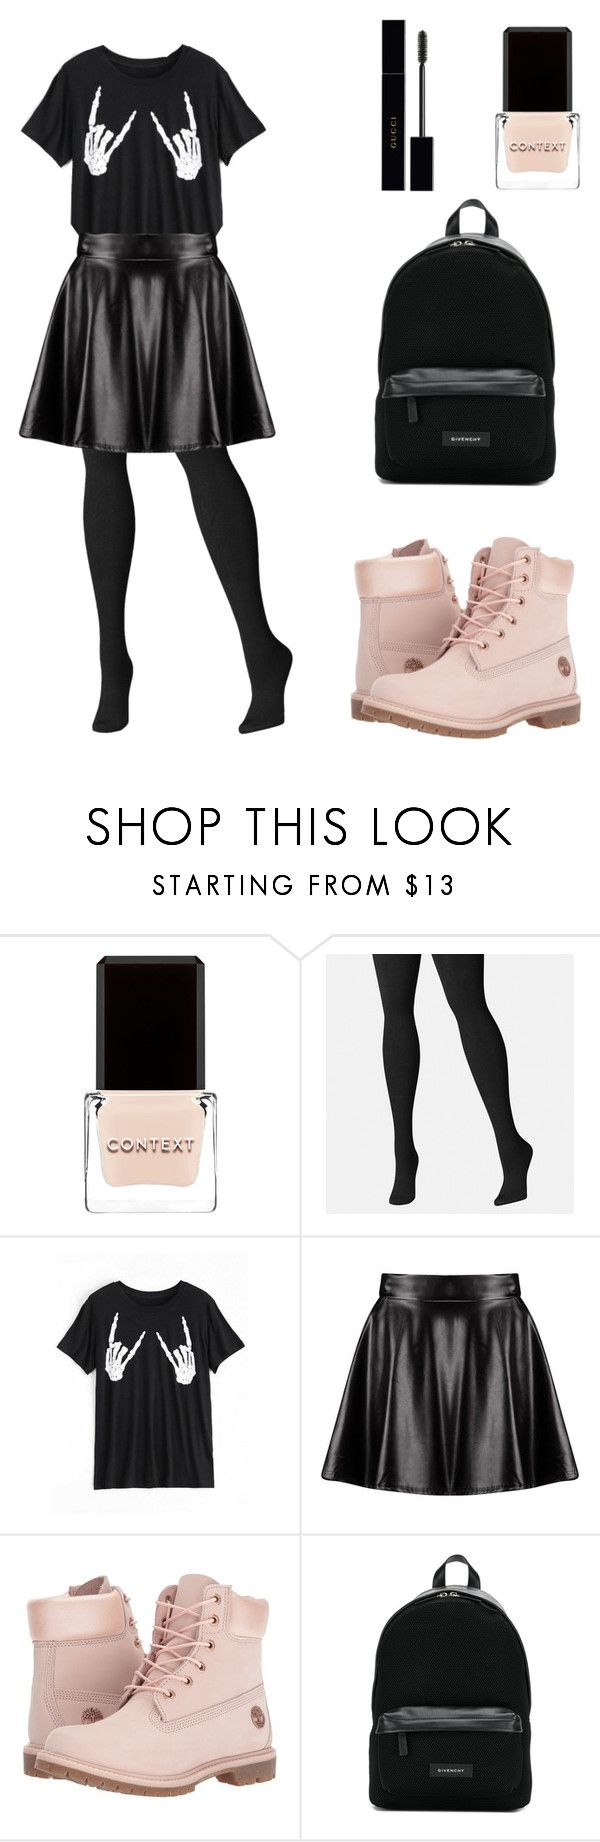 """""""School outfit fall black timberland halloween inspired"""" by alisa-soboleva-ua on Polyvore featuring Context, Avenue, Boohoo, Timberland, Givenchy and Gucci"""